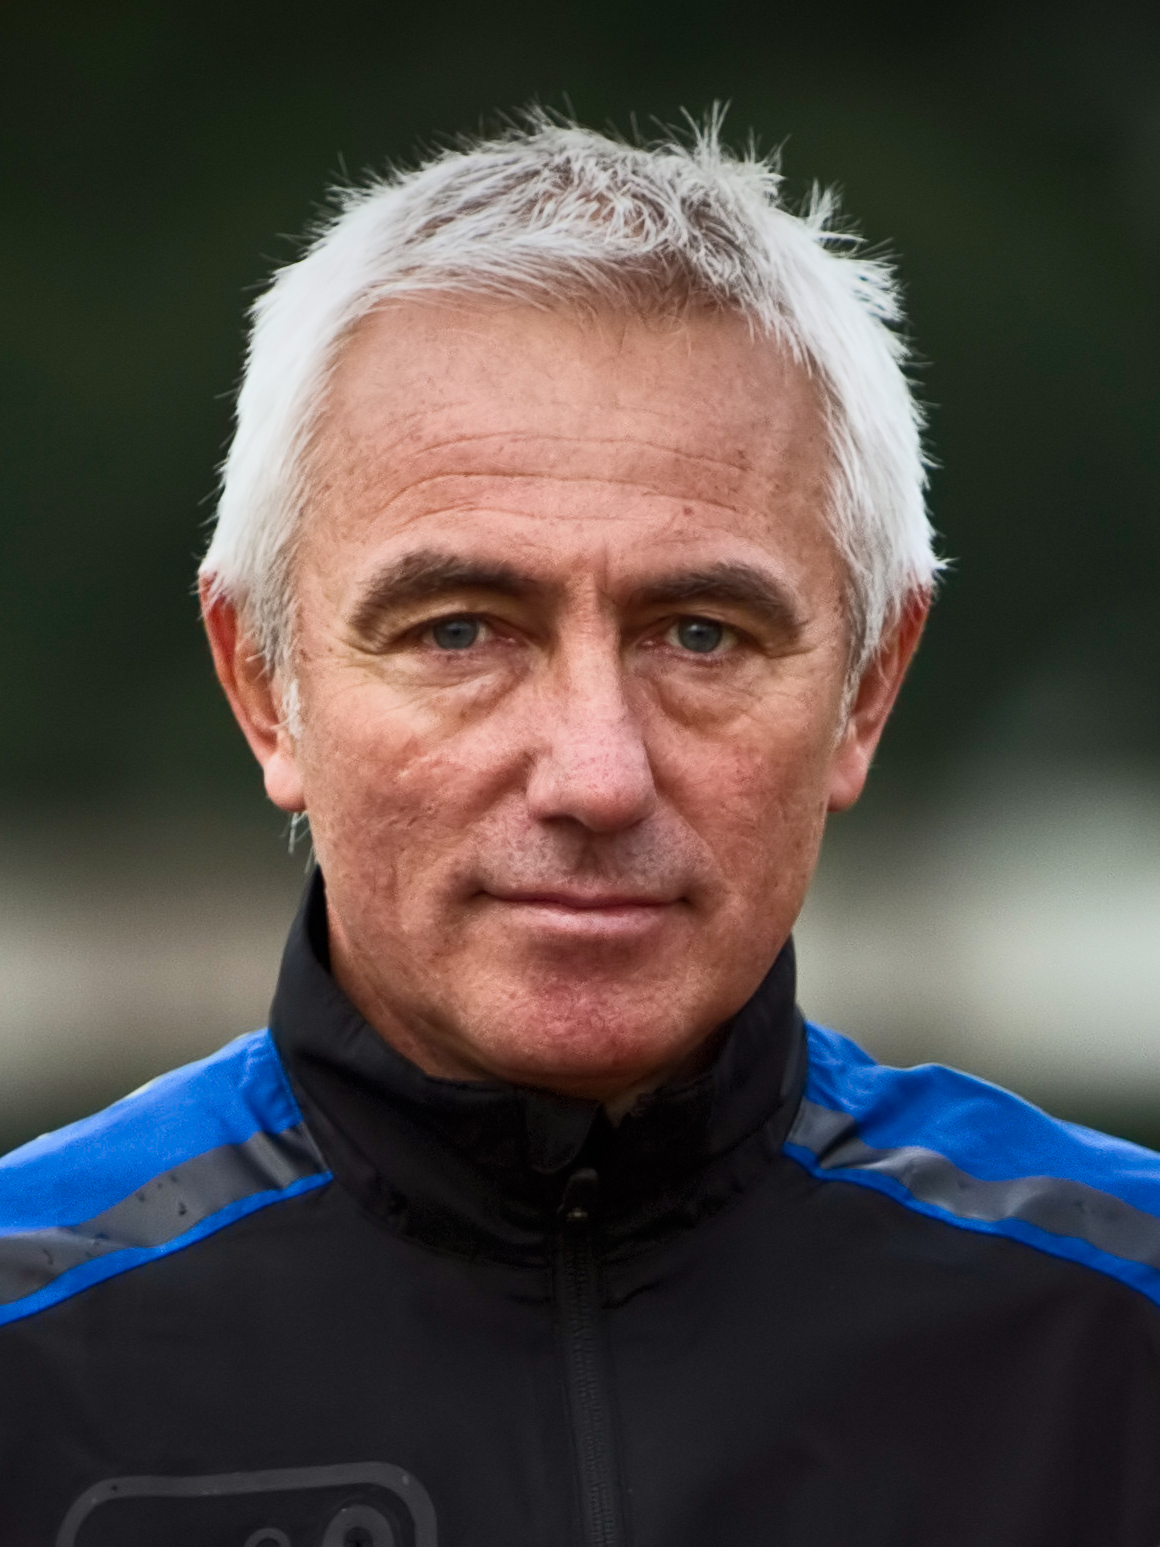 The 66-year old son of father (?) and mother(?) Bert van Marwijk in 2018 photo. Bert van Marwijk earned a  million dollar salary - leaving the net worth at 15 million in 2018